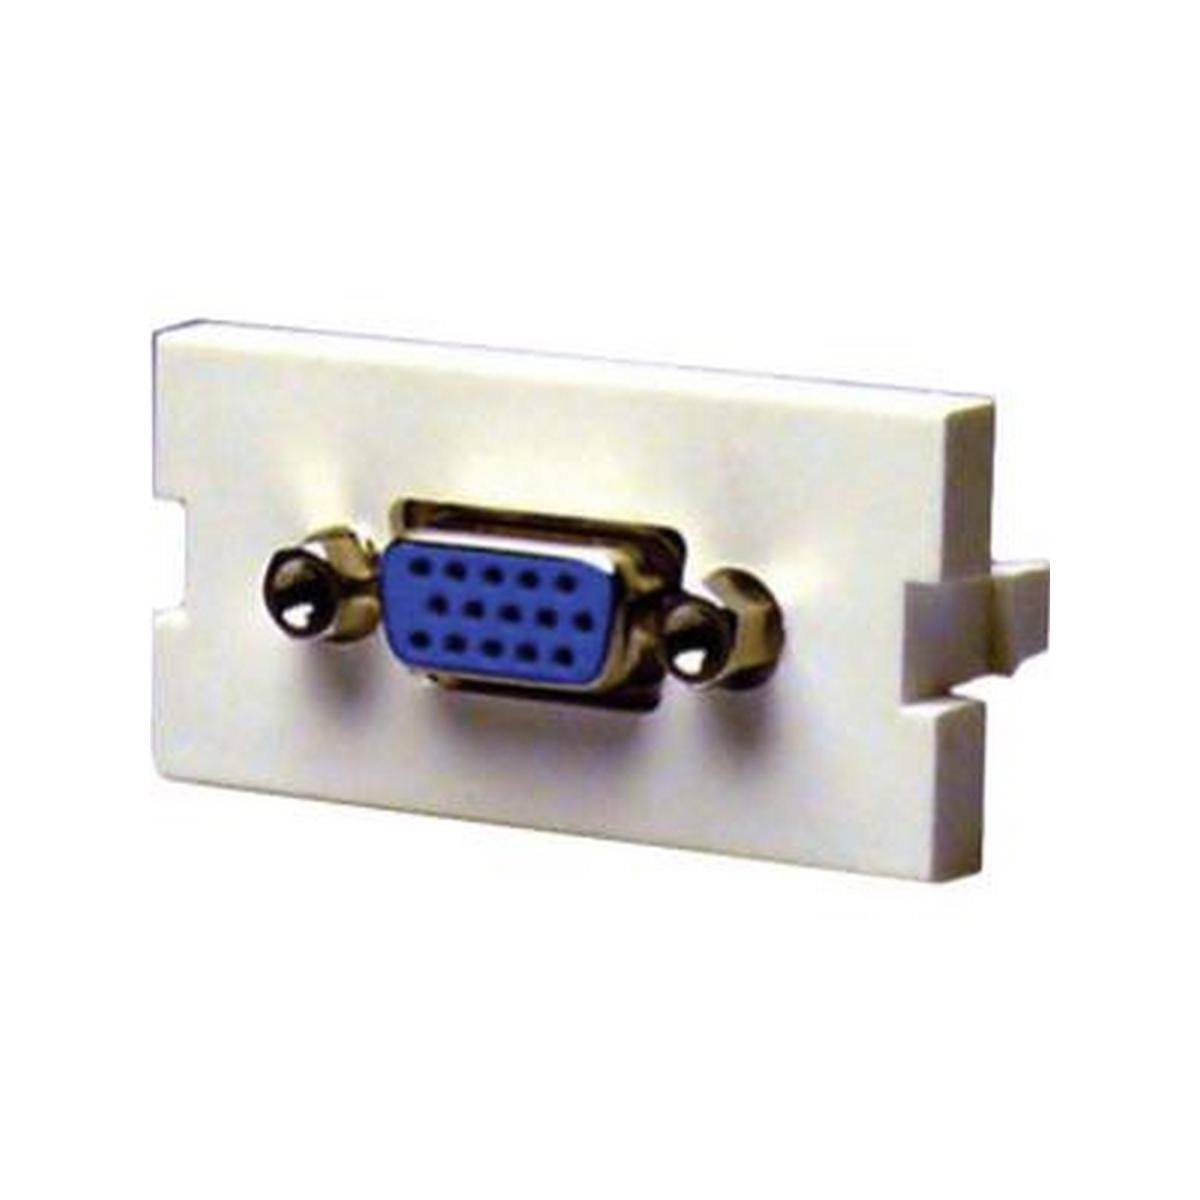 NTW 3UN-FFHD15 SVGA Female to Female Coupler Adapter Module